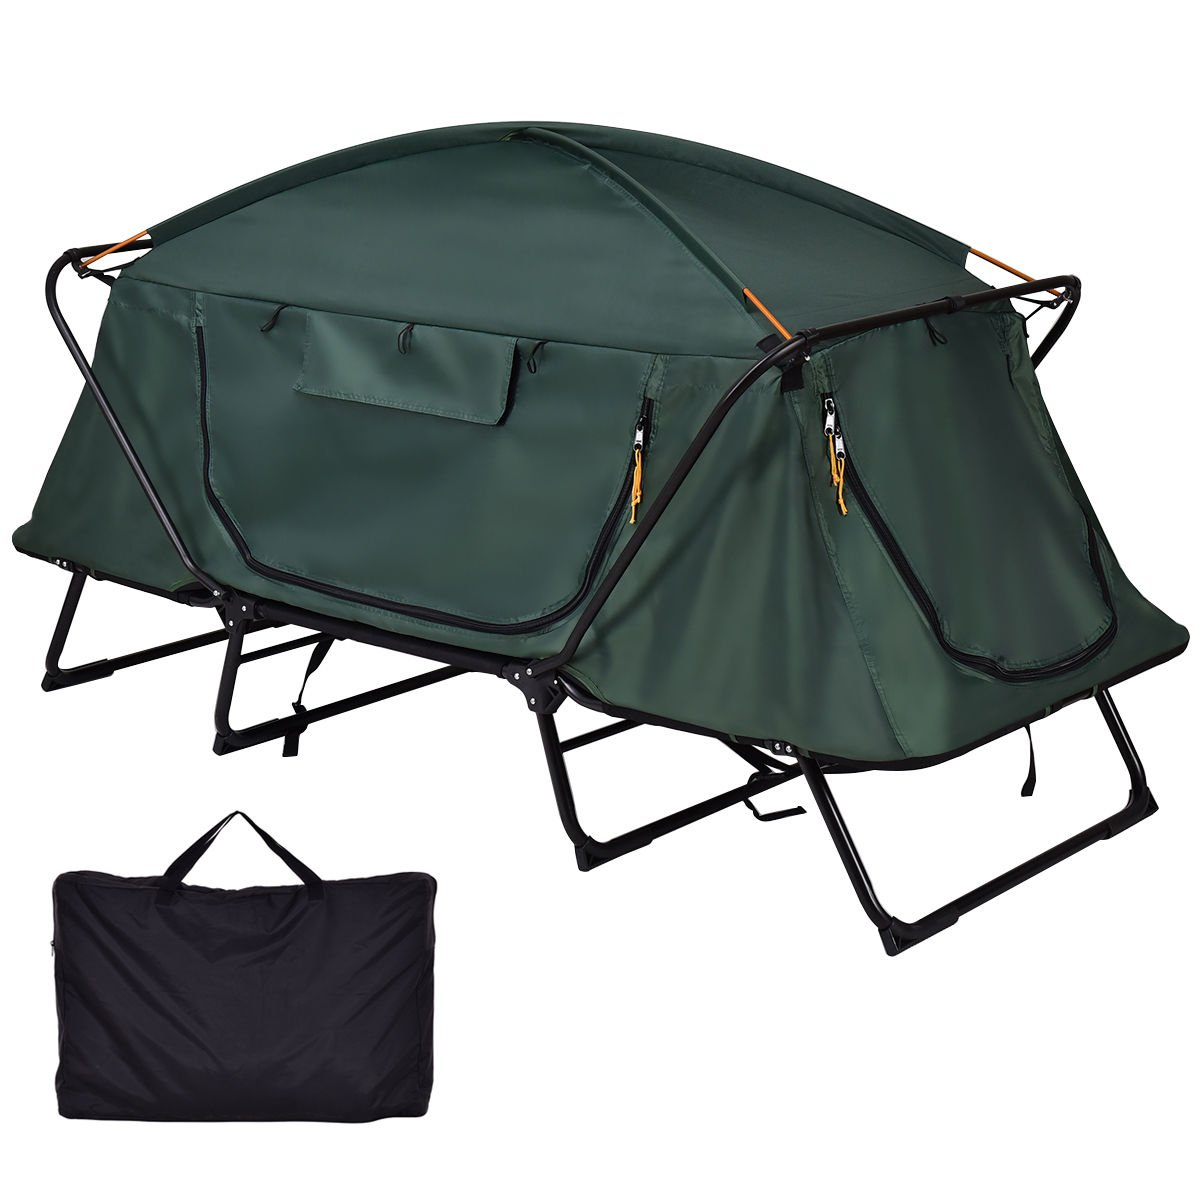 Tangkula Tent Cot Folding Waterproof 1 Person Hiking Camping Tent with Carry Bag by Tangkula (Image #2)